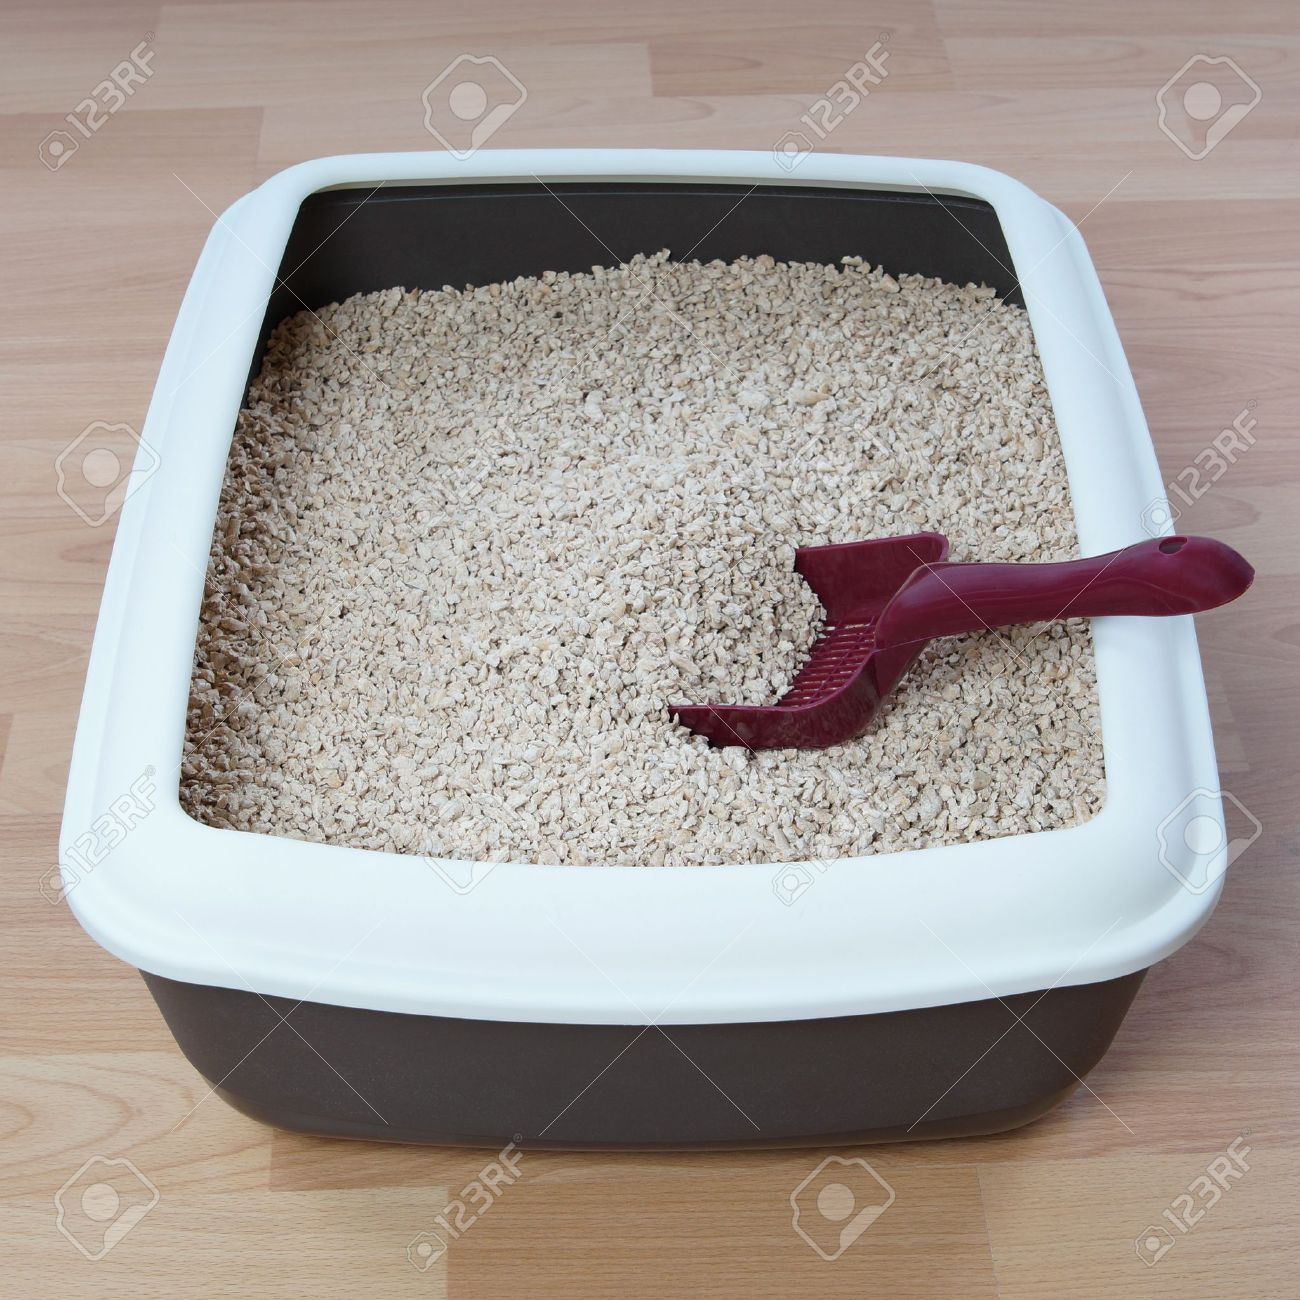 stock photo cat litter box with biodegradable pine wood chips arena kitty litter box